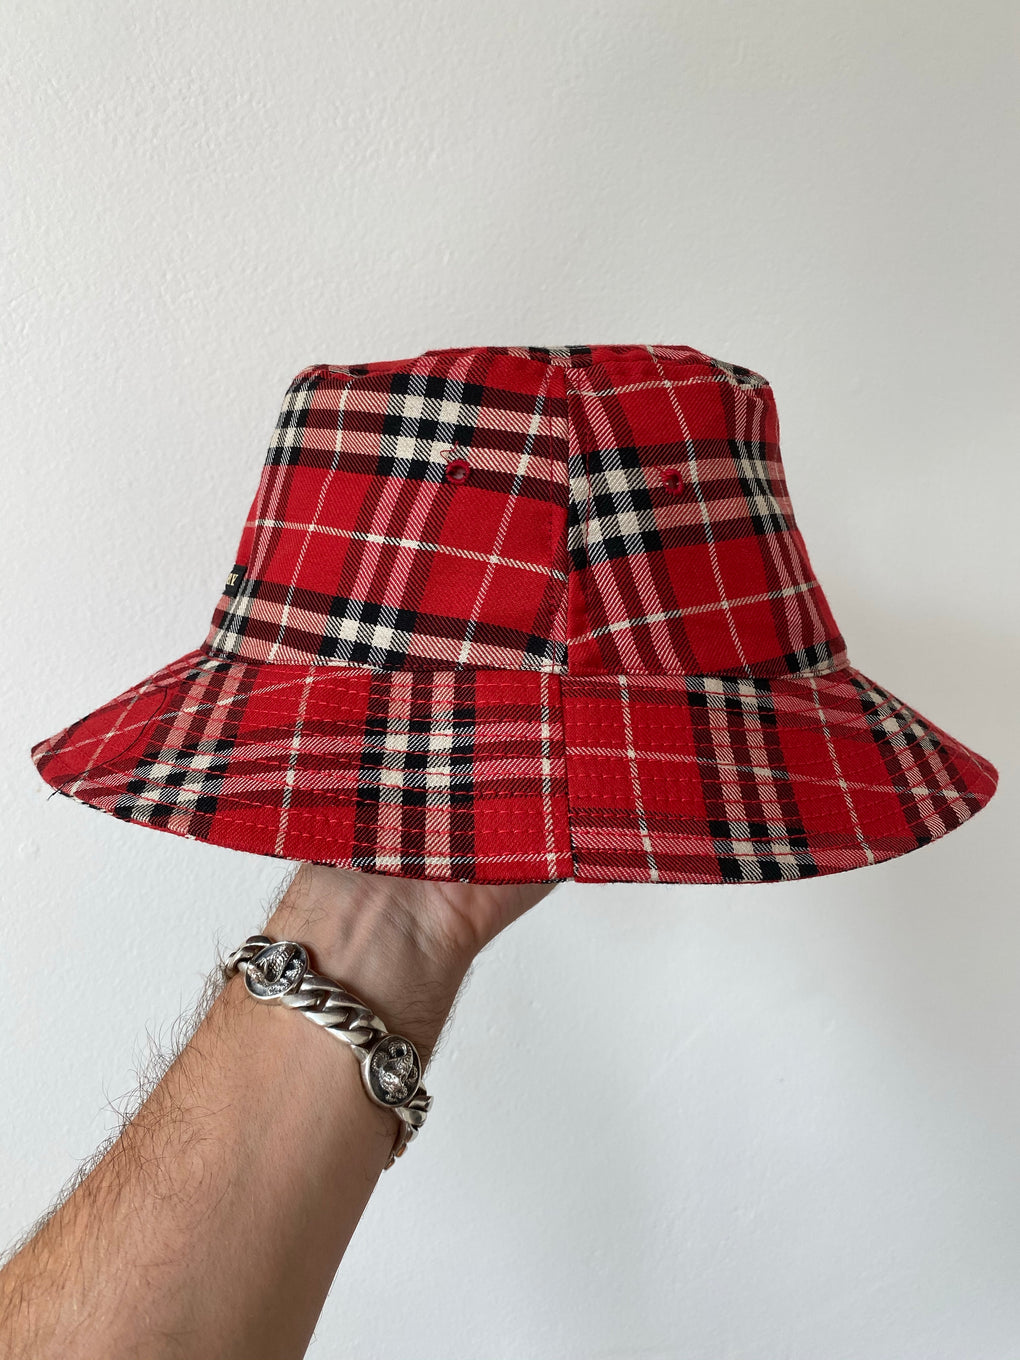 BURBERRY BUCKET HAT - FROTHLYF